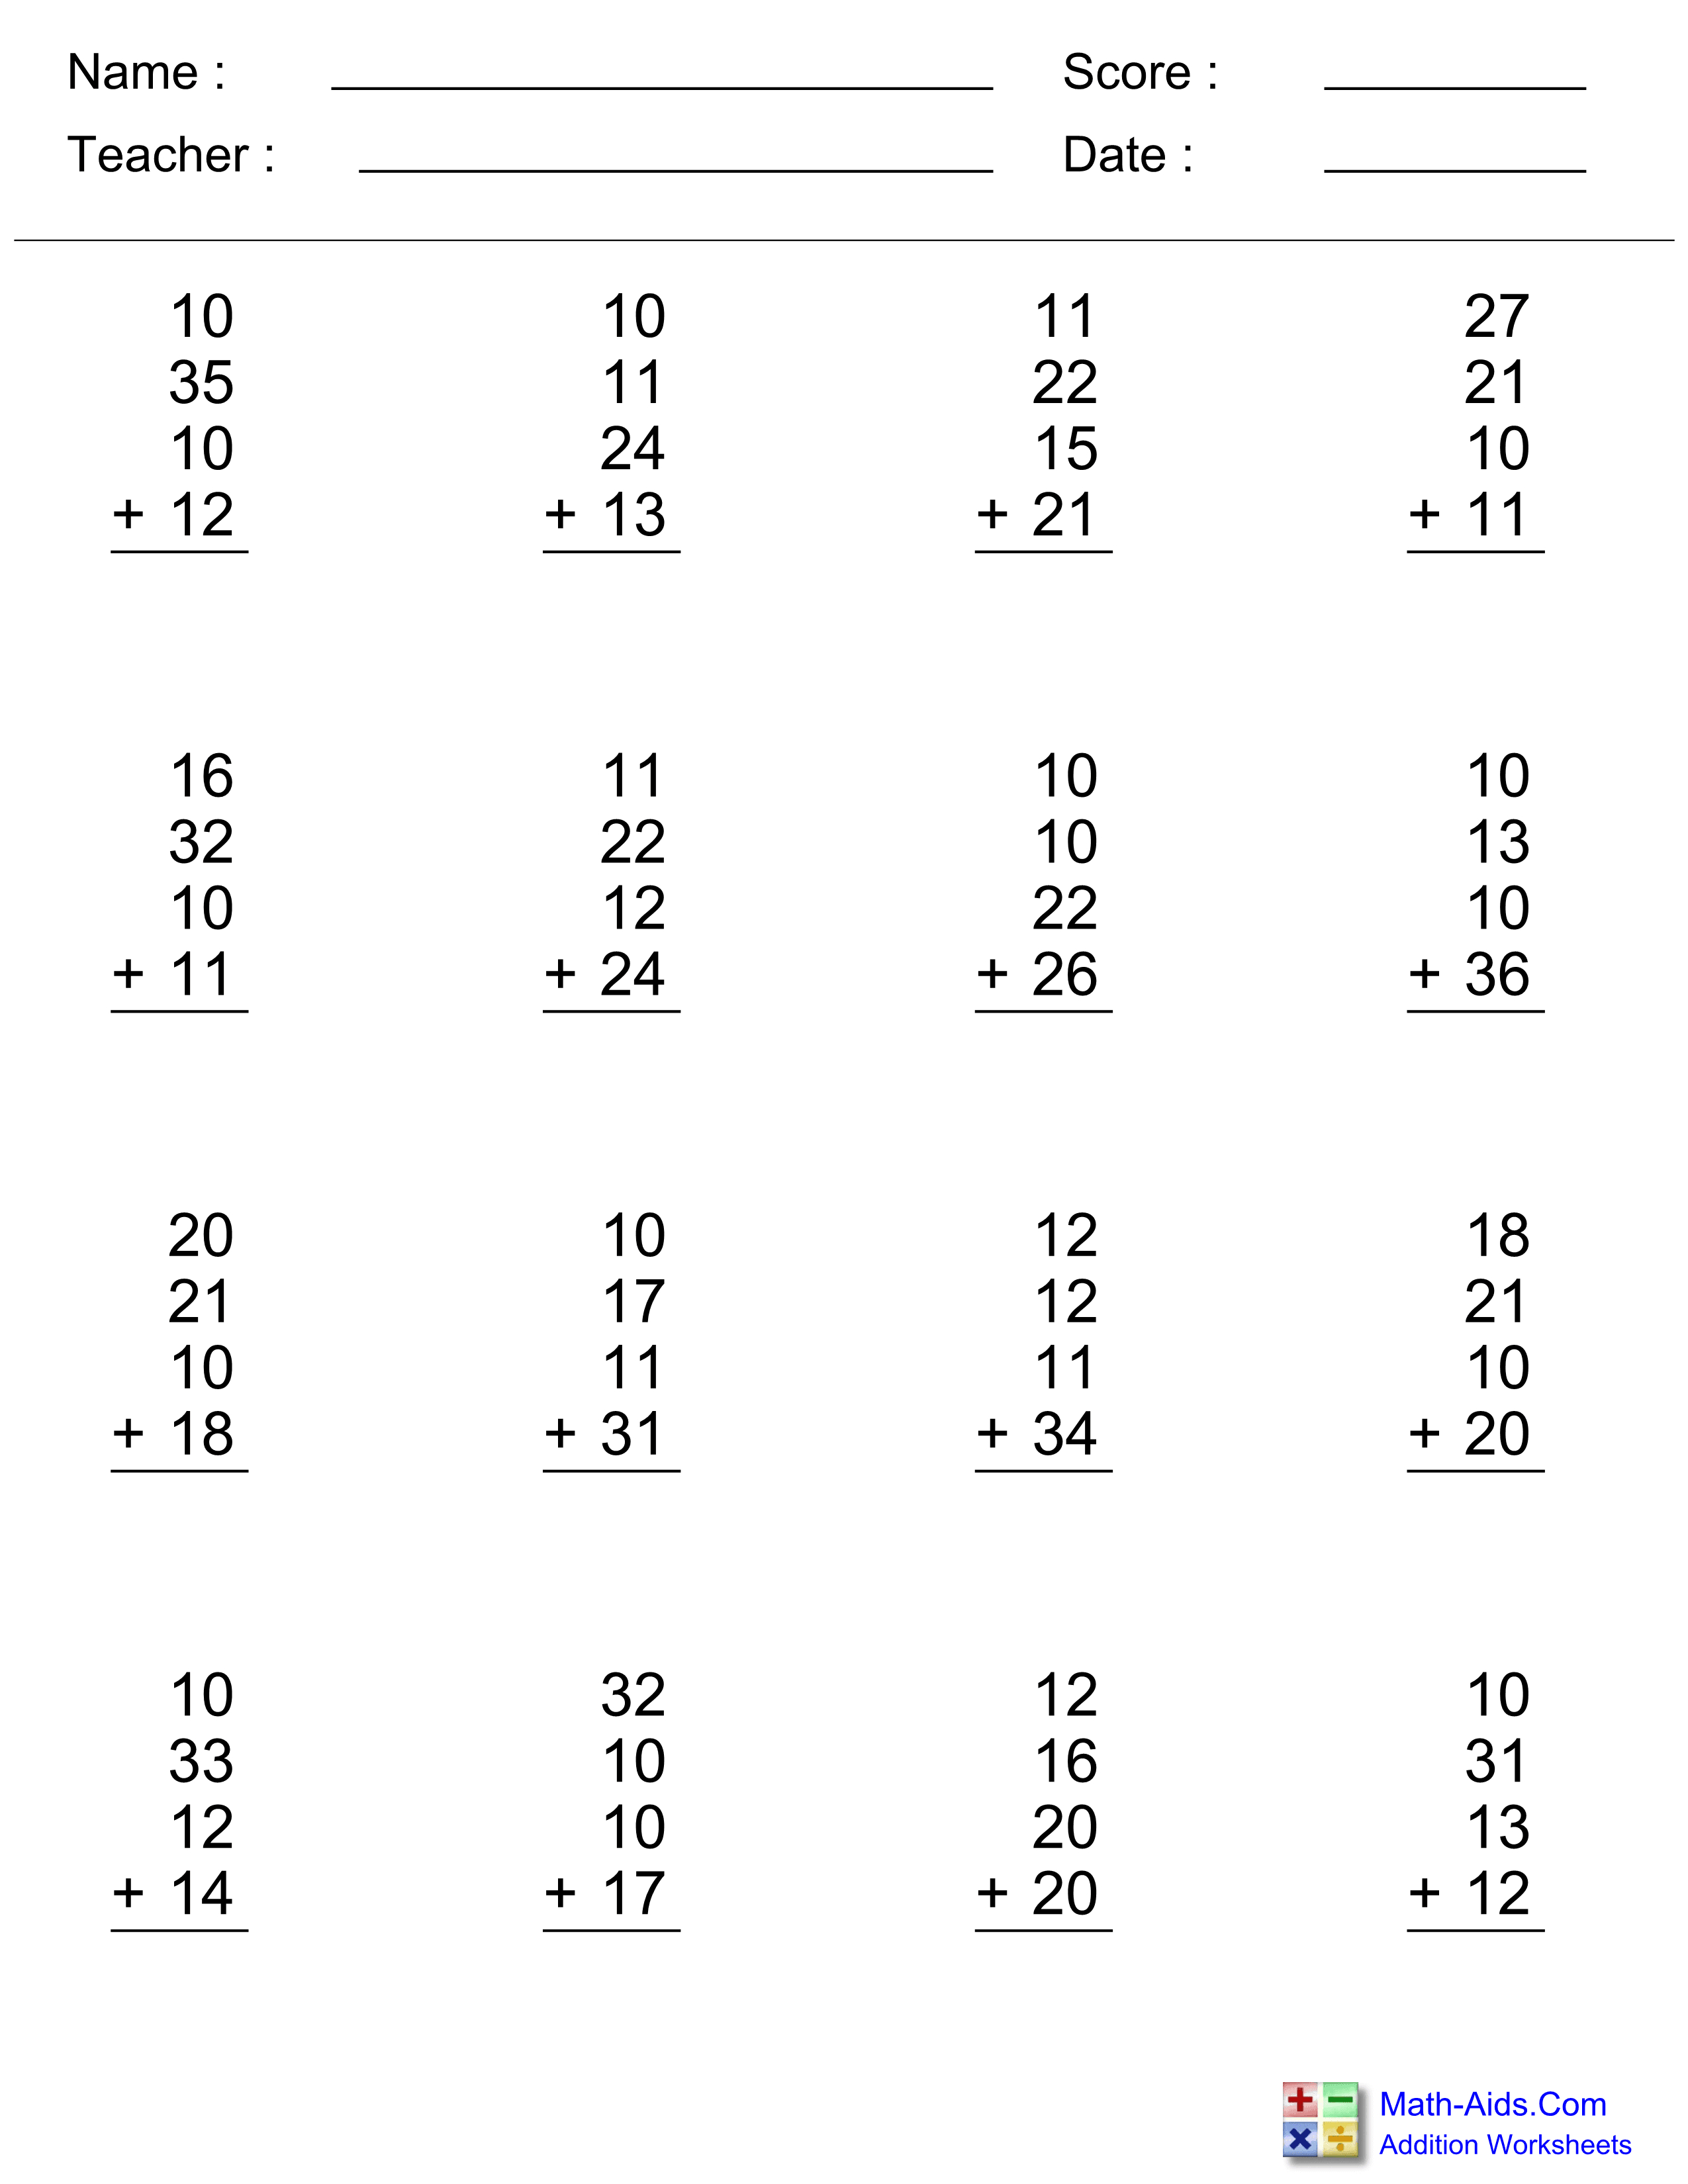 Addition Worksheets | Dynamically Created Addition Worksheets - Free Printable Addition Worksheets